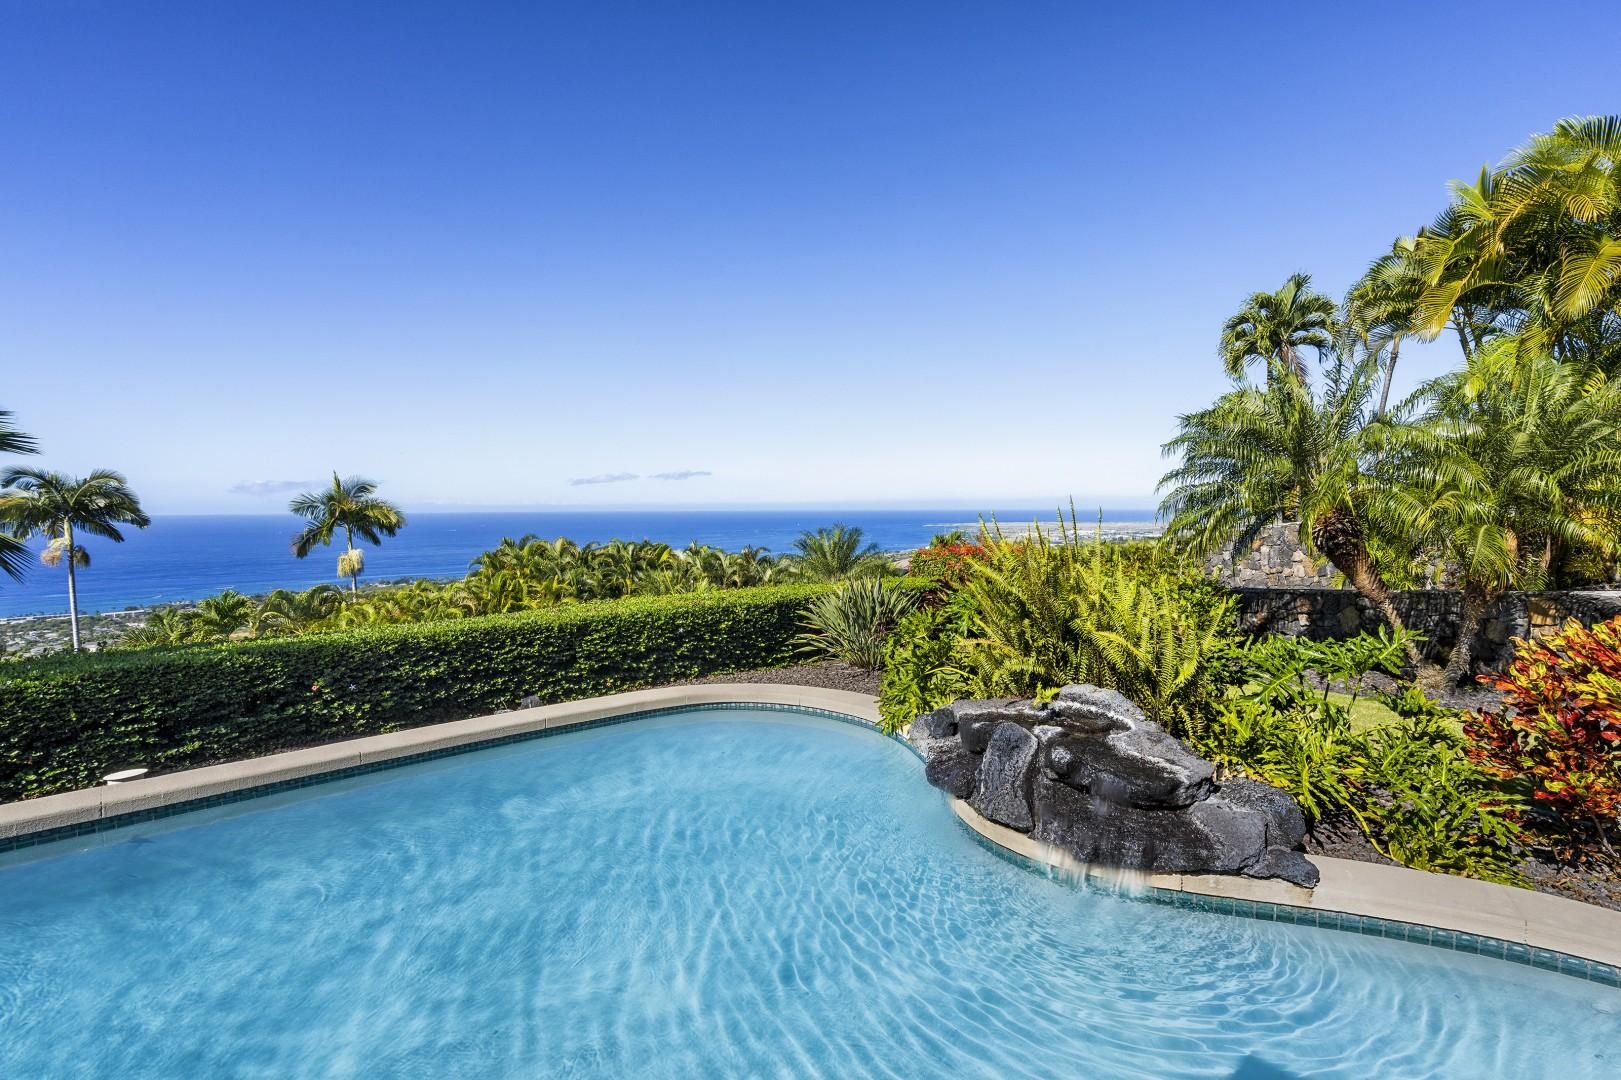 Enjoy the tranquil waterfall pool feature!